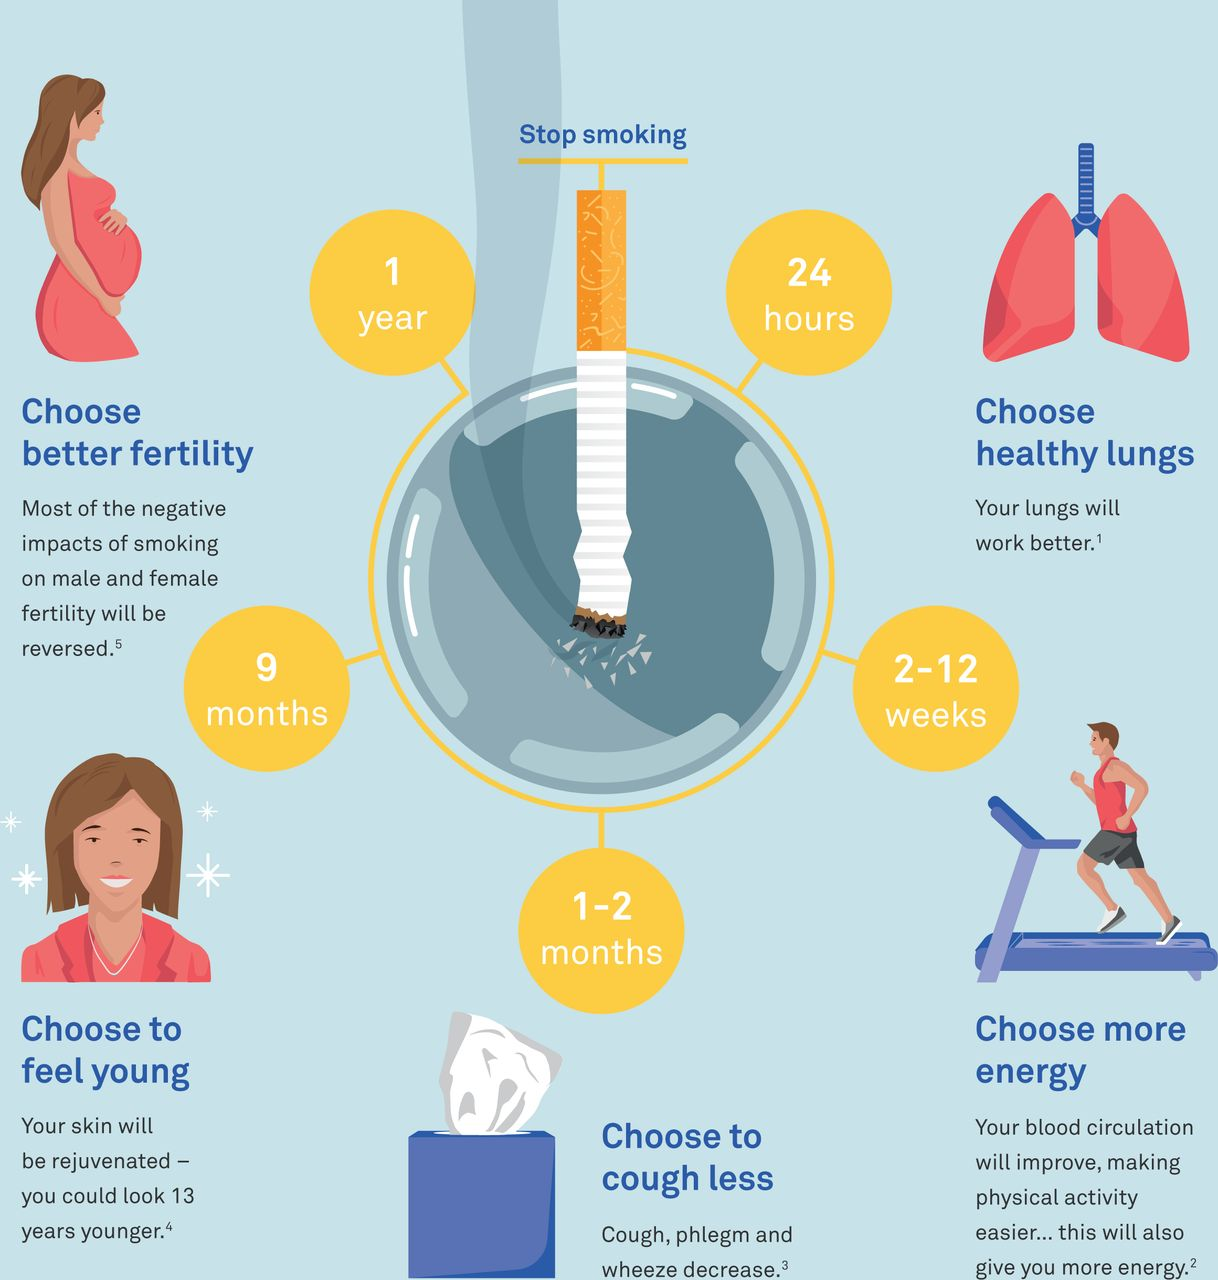 Quitting Smoking: The Benefits